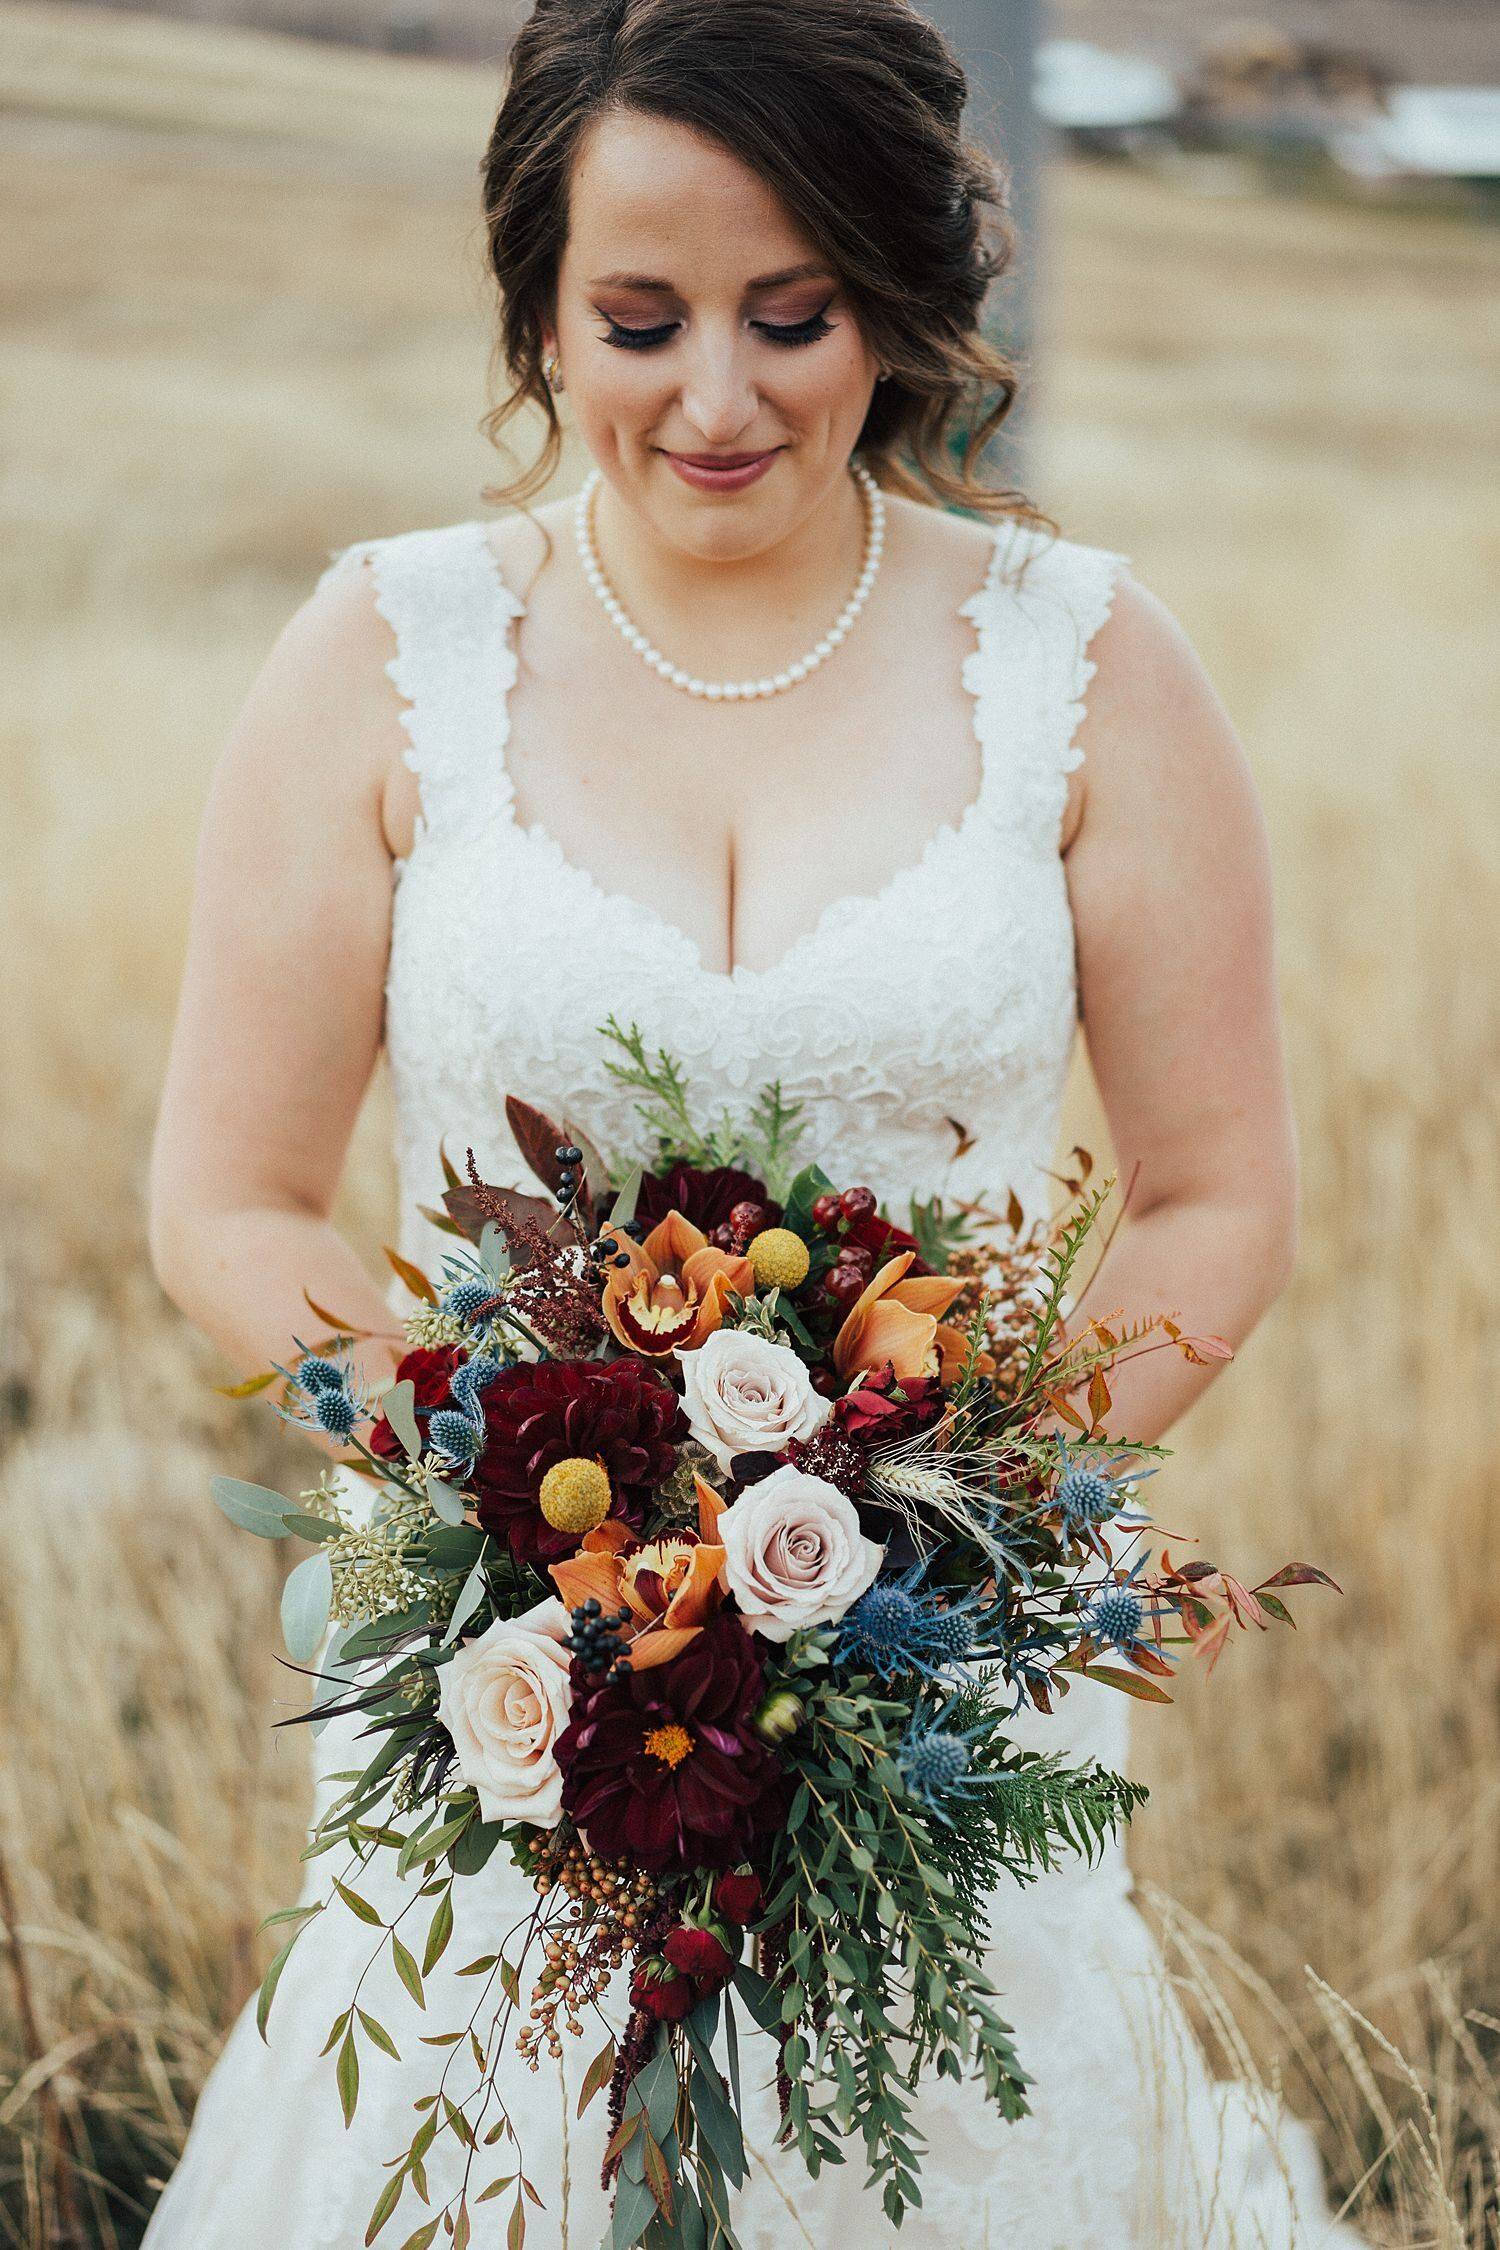 Rustic Cranberry and Orange Wedding Florals with Fall Foliage at Snowbasin Resort — Poppy & Bloom Floristry